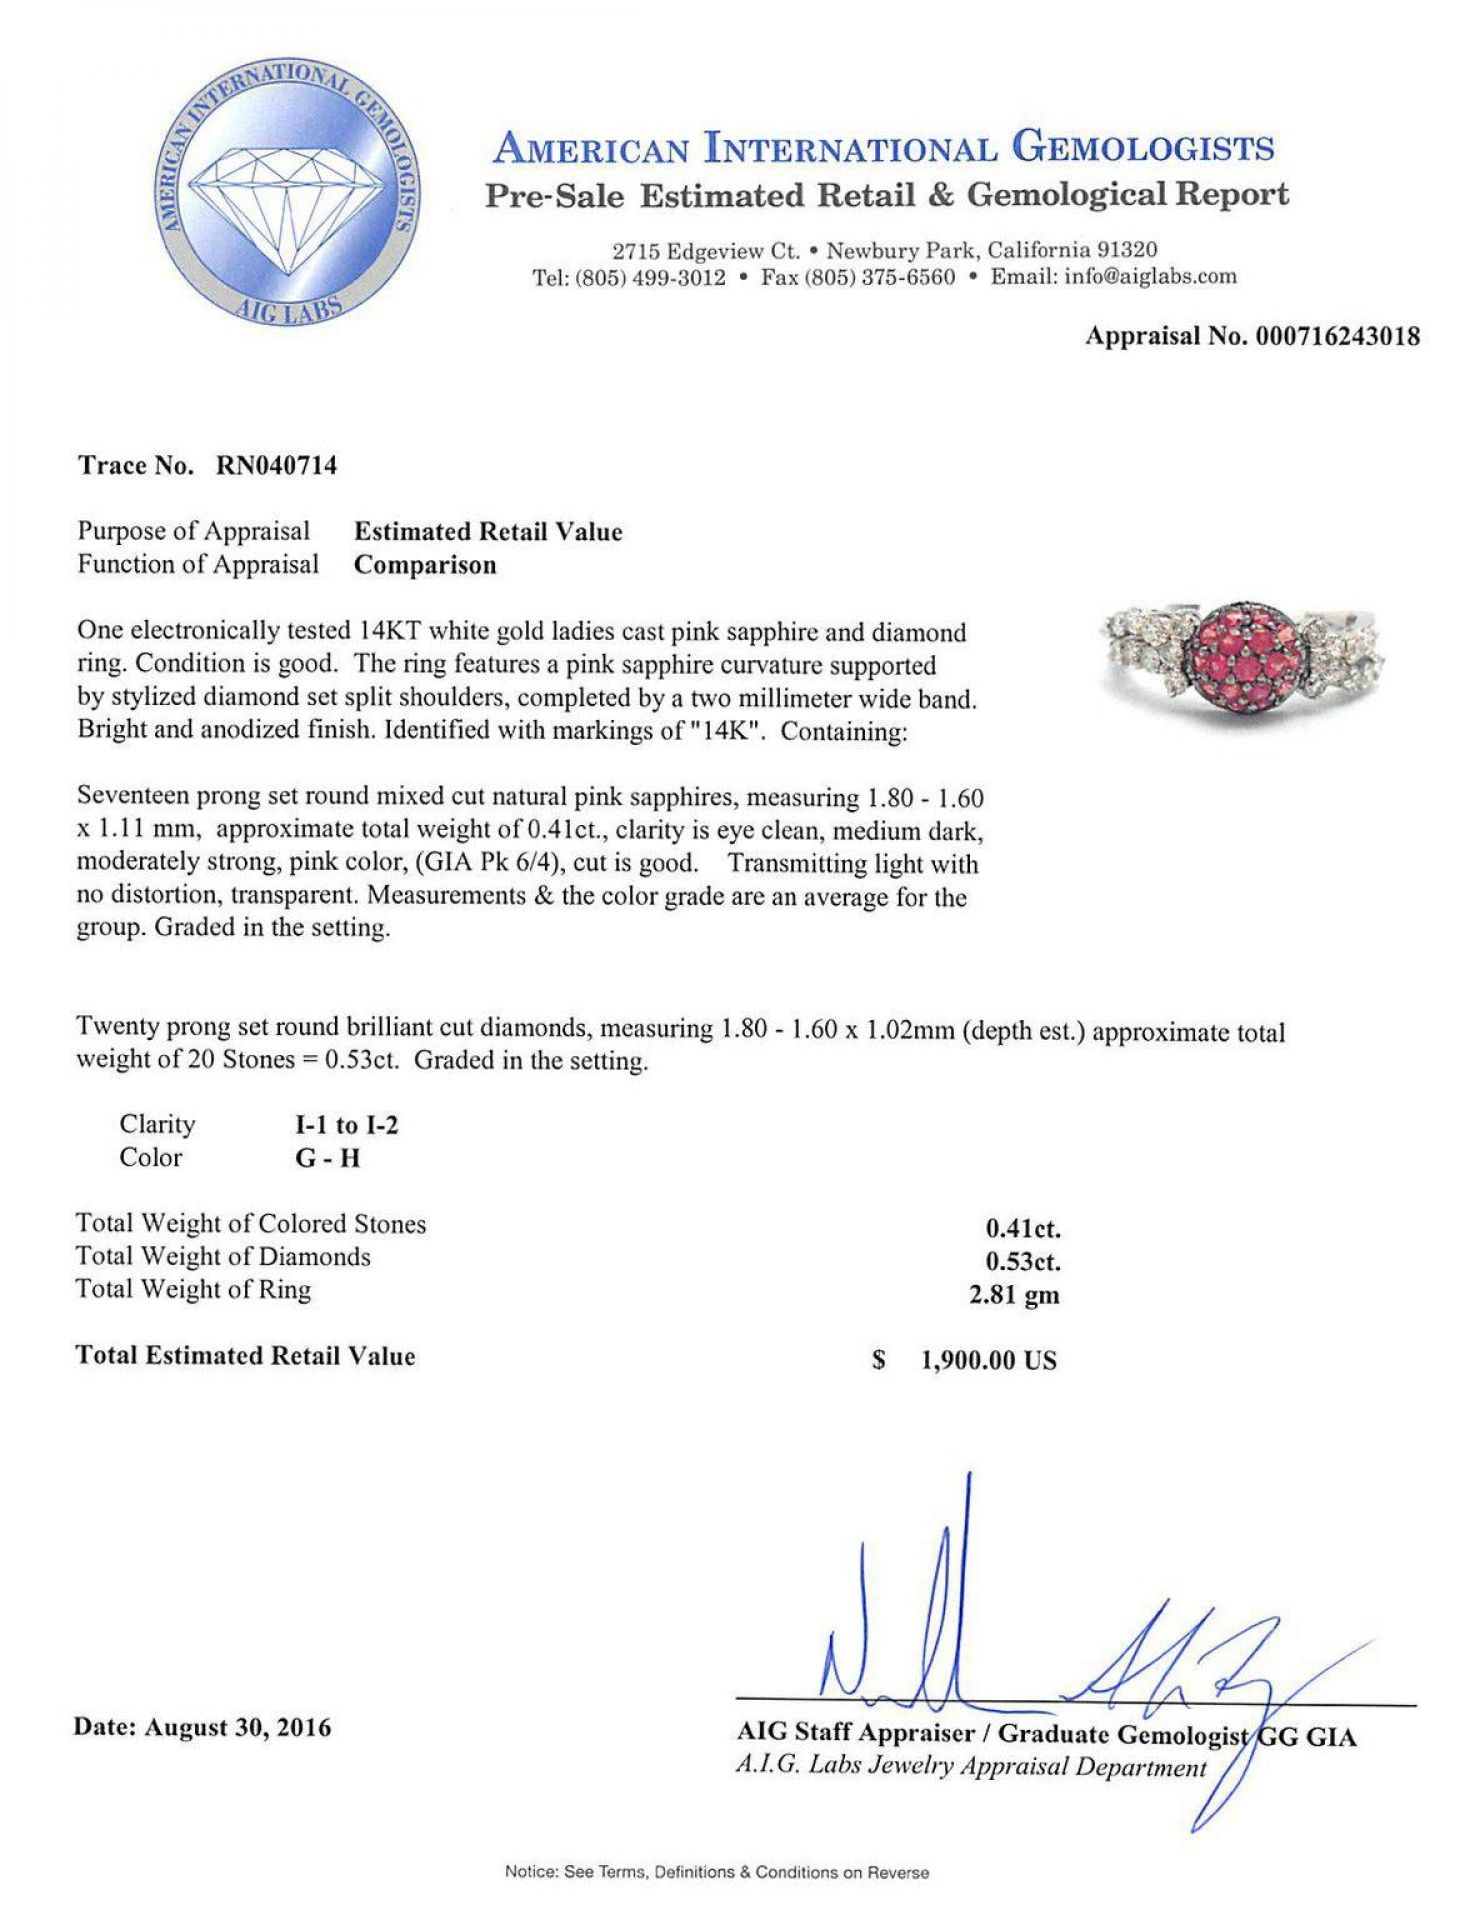 0.41ct Pink Sapphire and 0.53ctw Diamond 14KT White Gold Ring